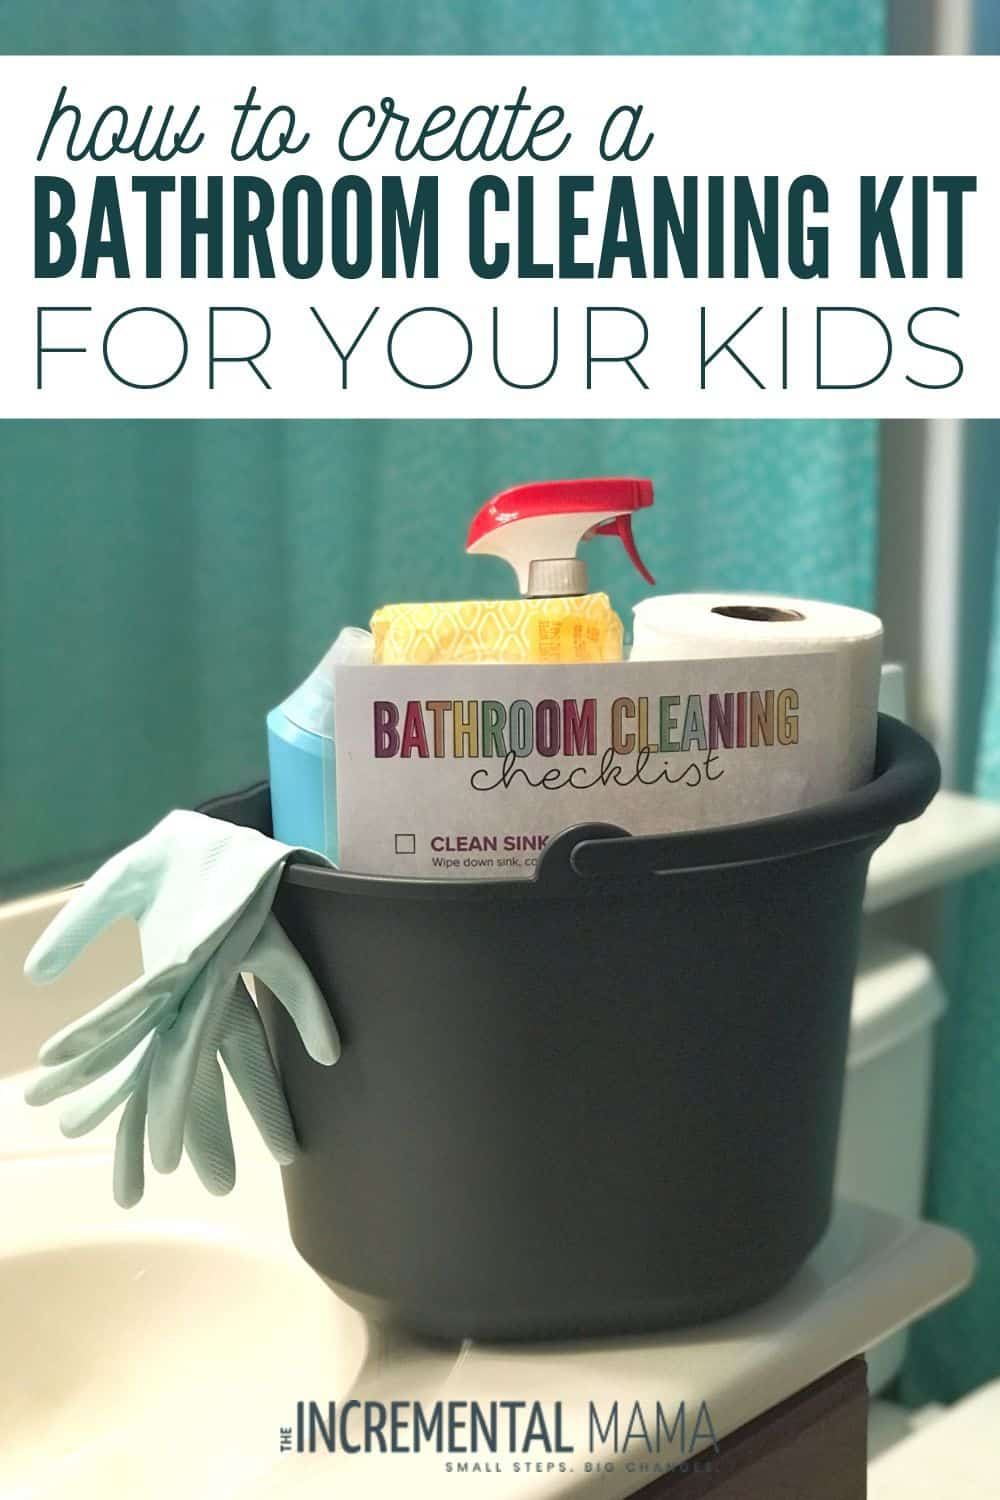 Bathroom cleaning kit for kids